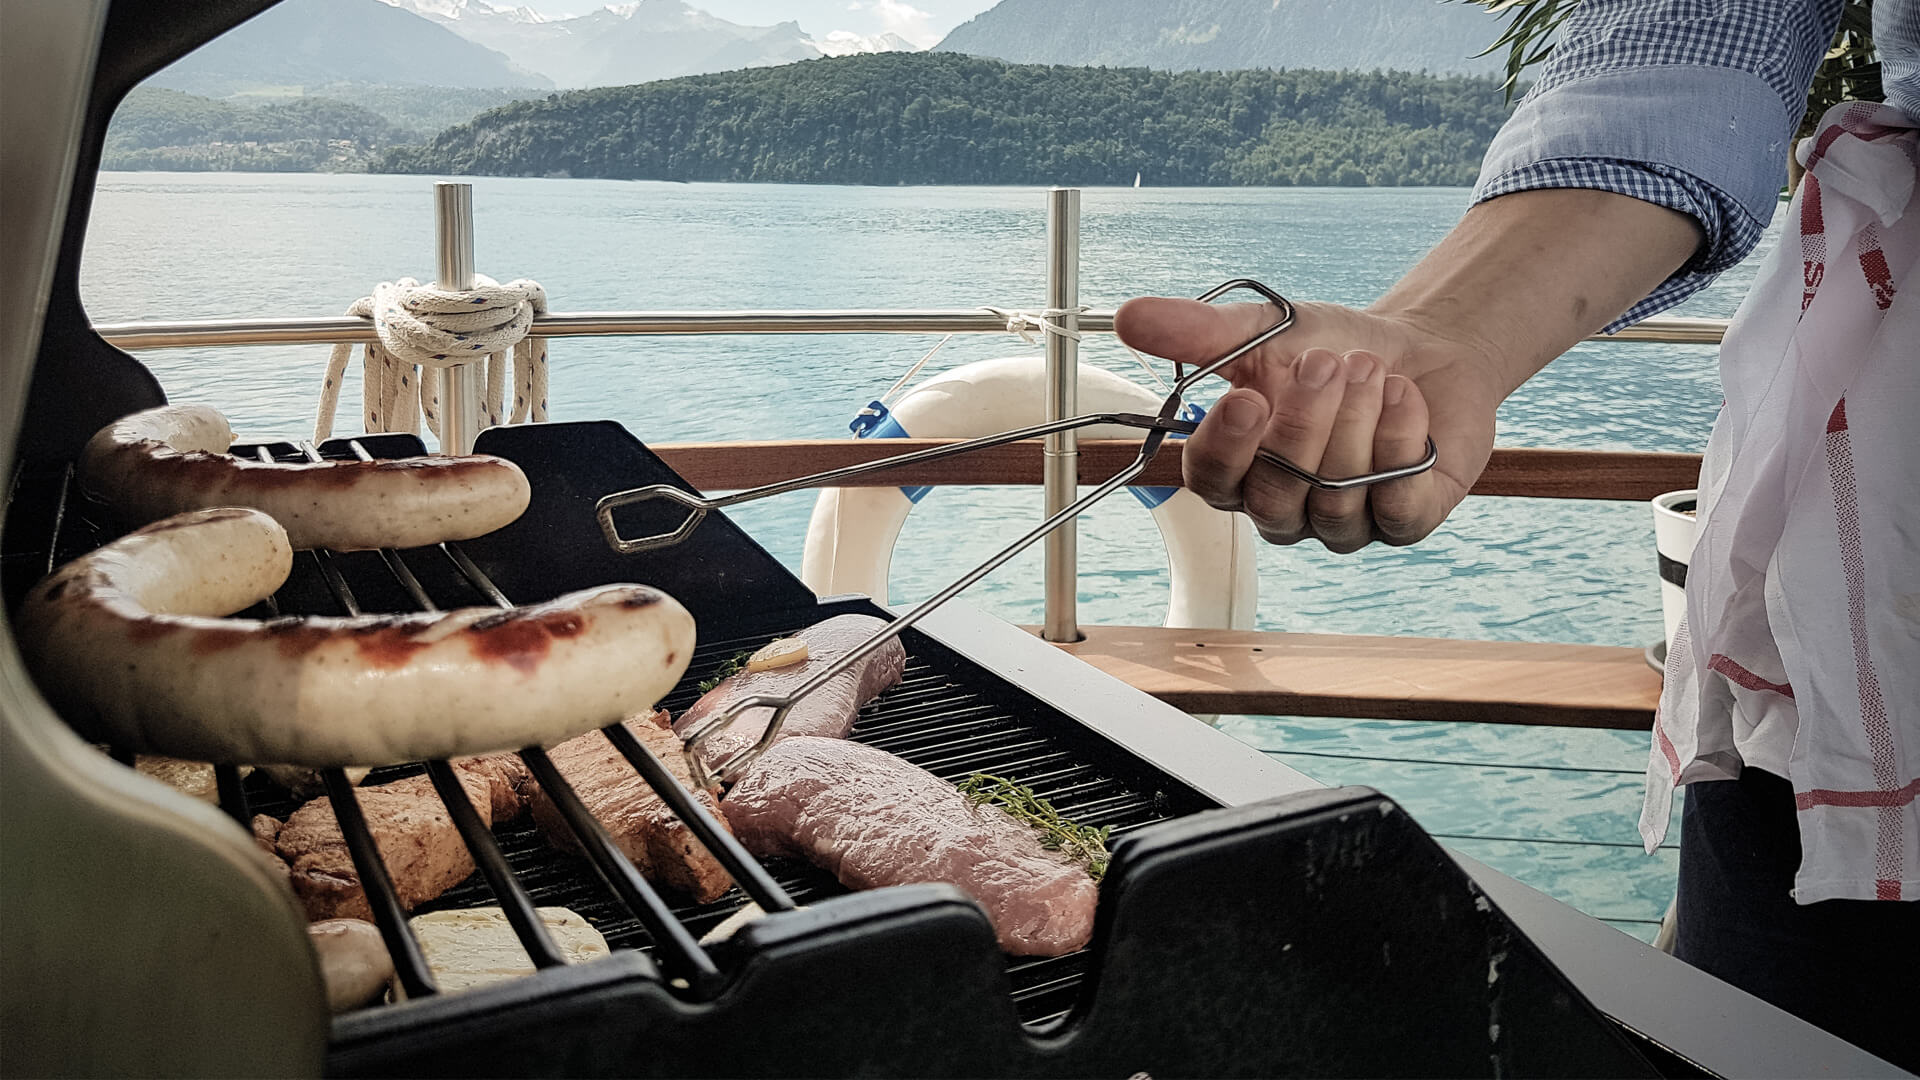 thun-solarschiff-sommer-thunersee-grill-picknick-gruppe